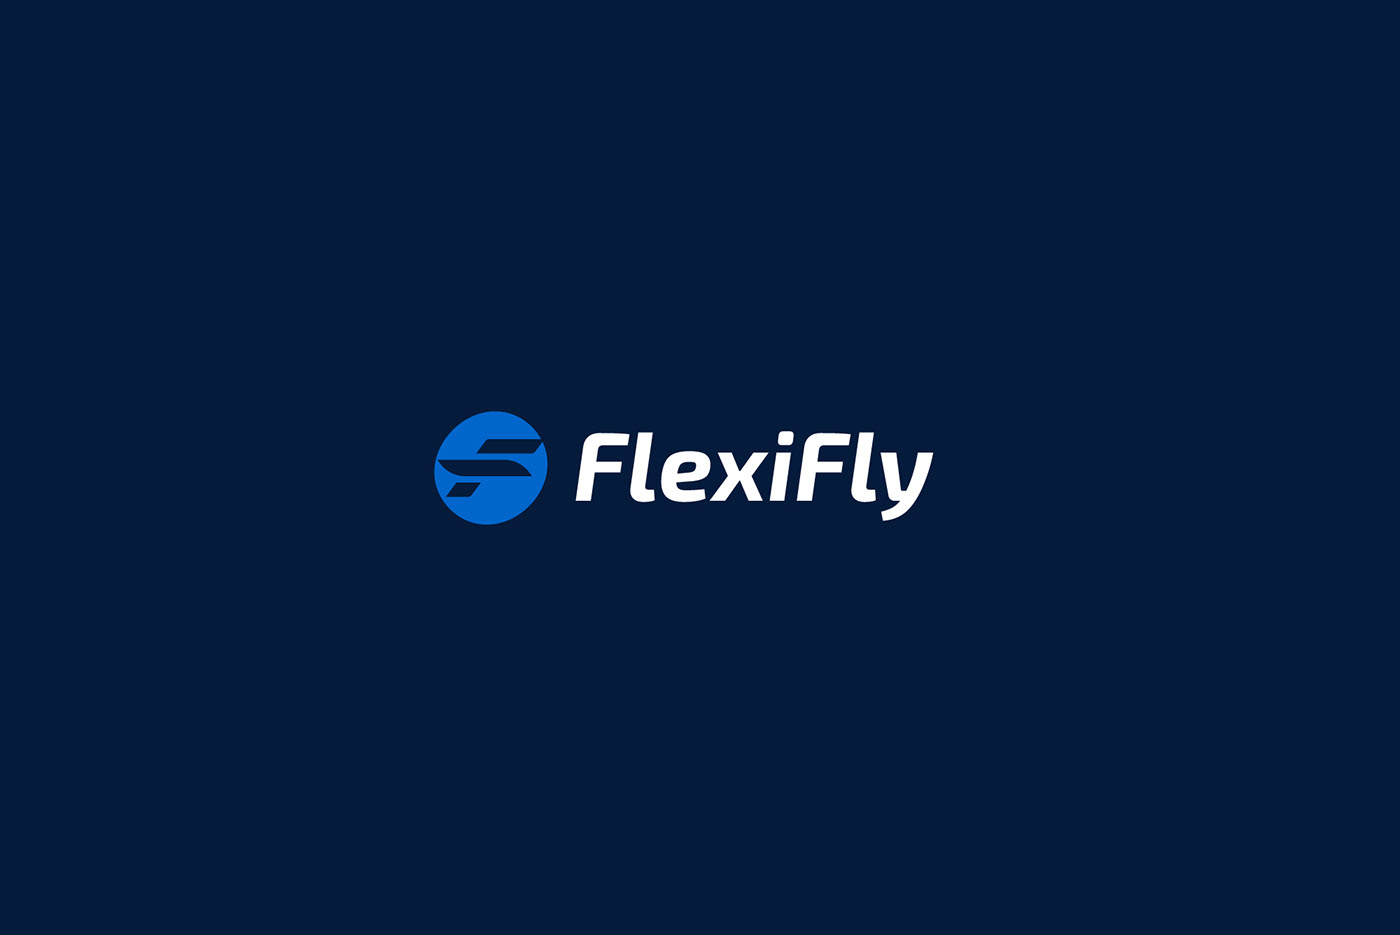 Aircraft airline aviation Travel Booking Booking System air